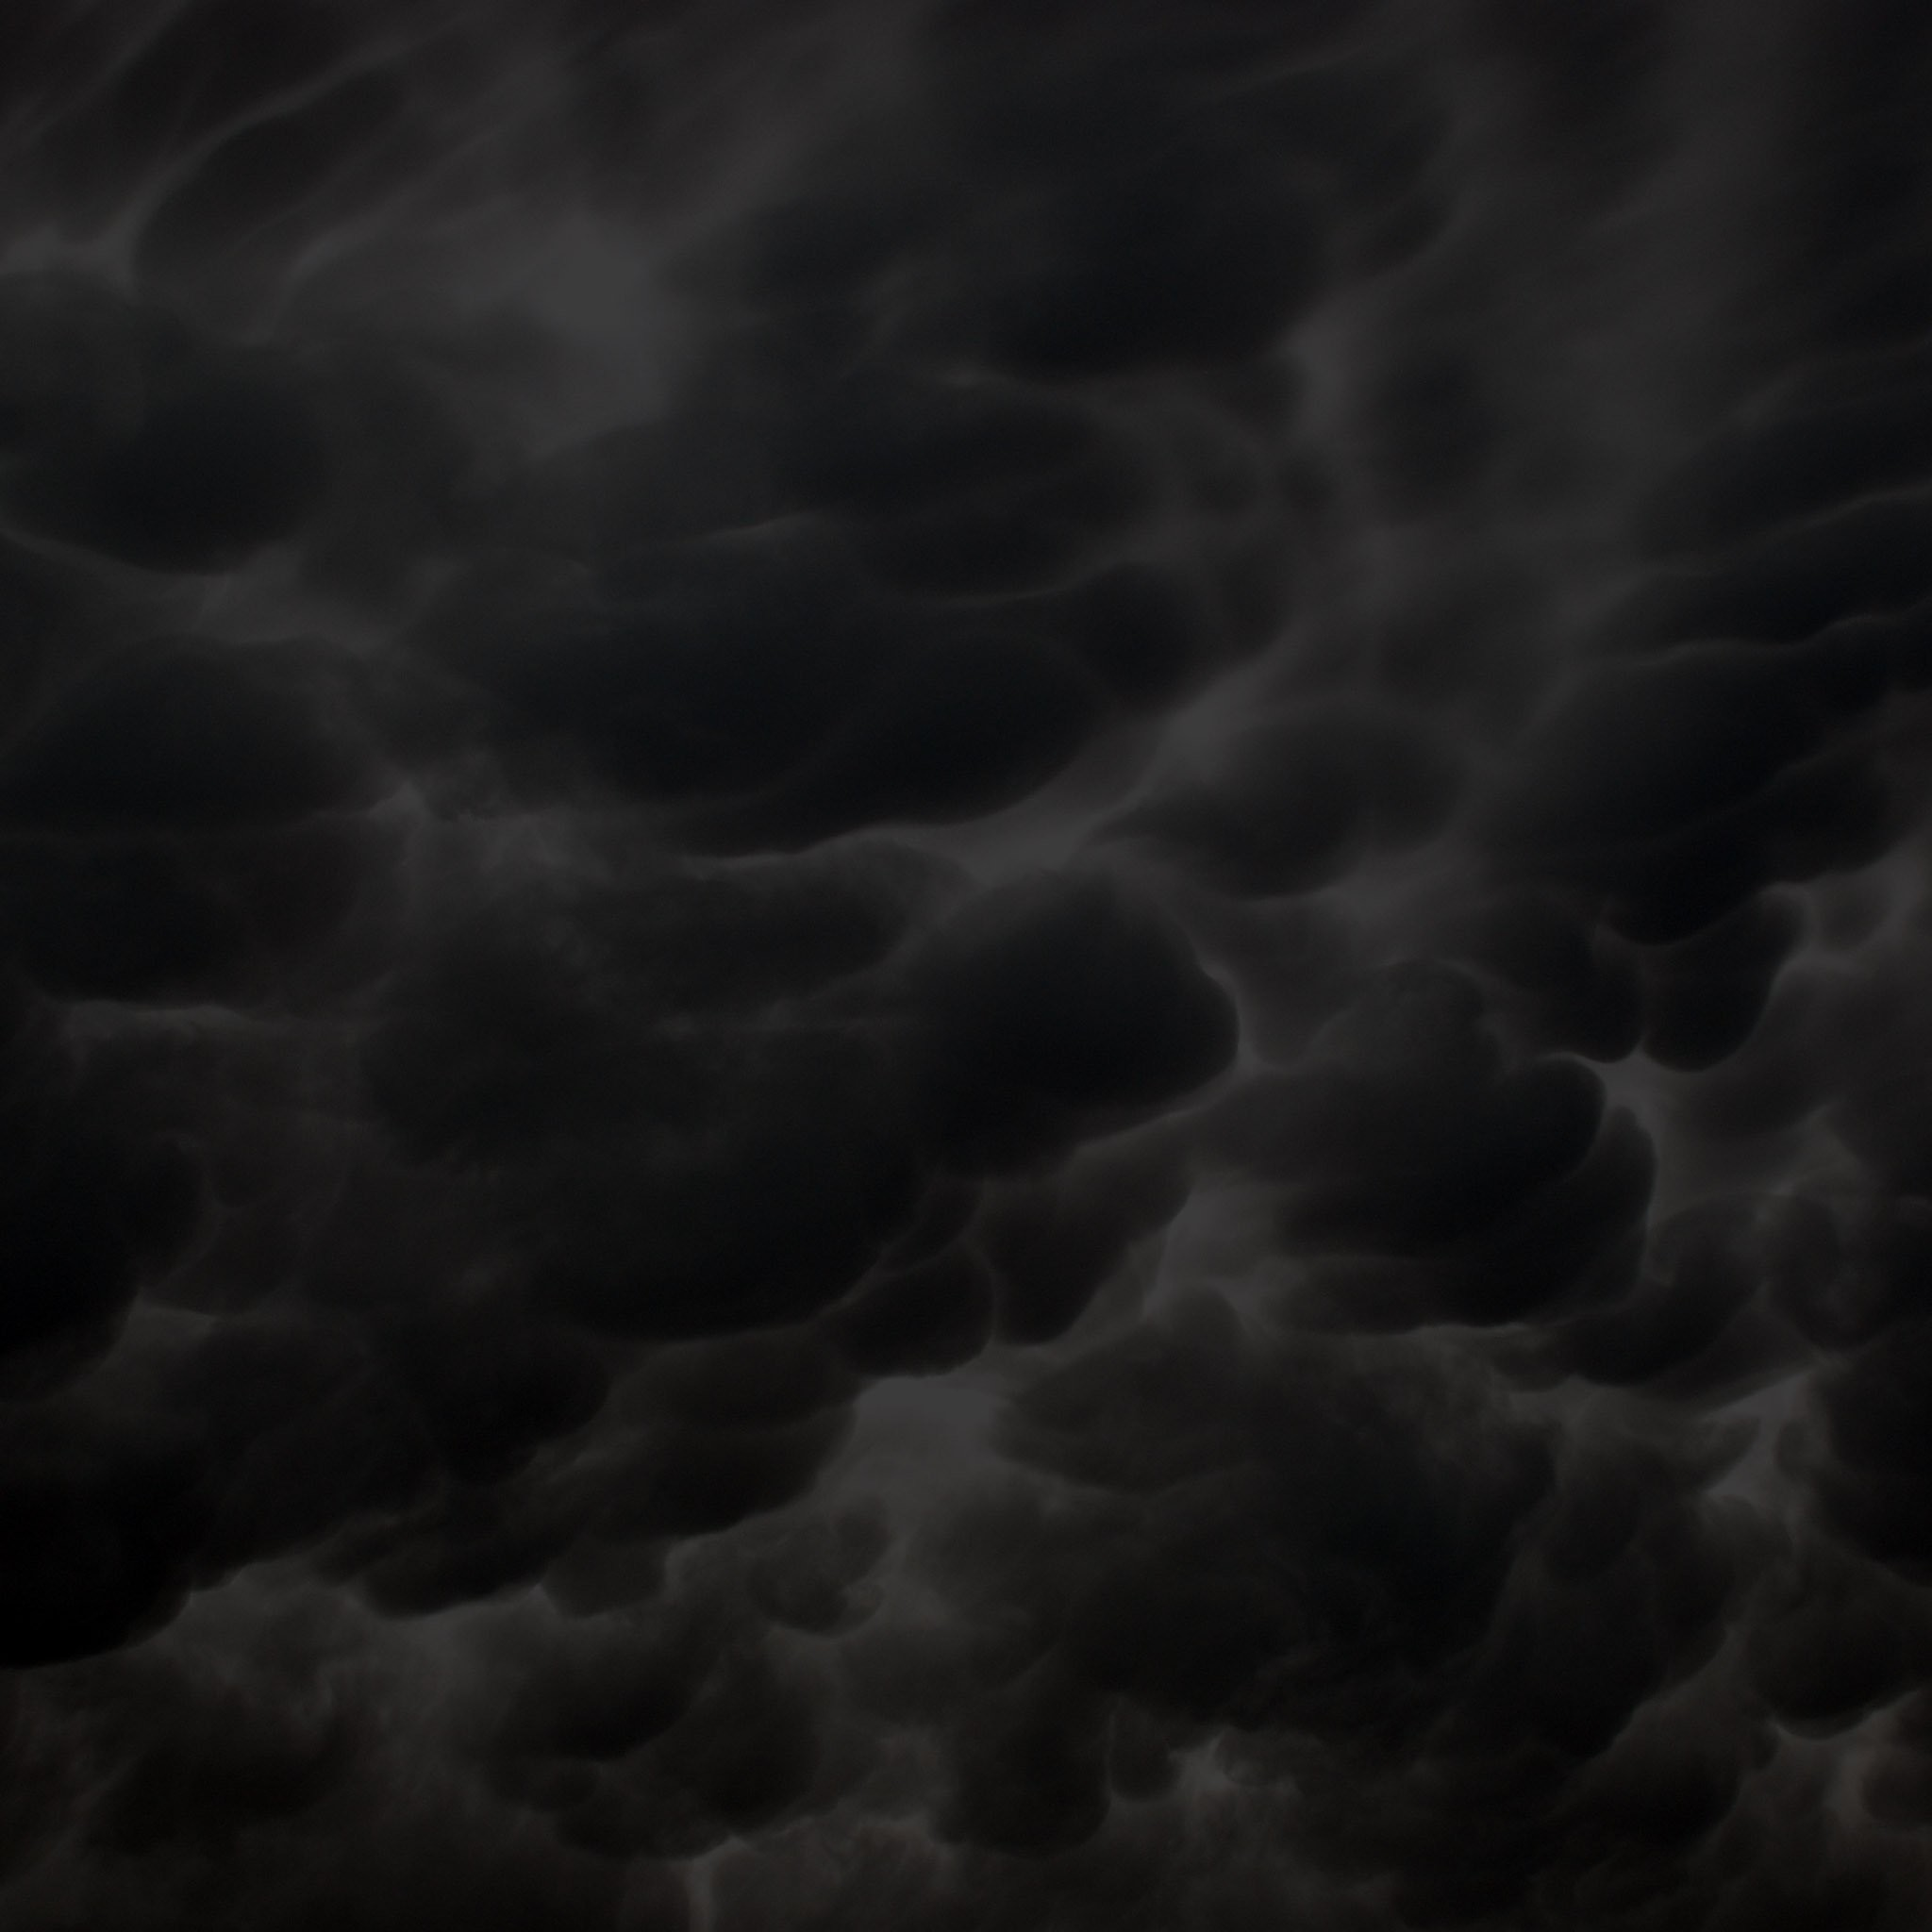 Black Clouds Background Posted By Sarah Cunningham